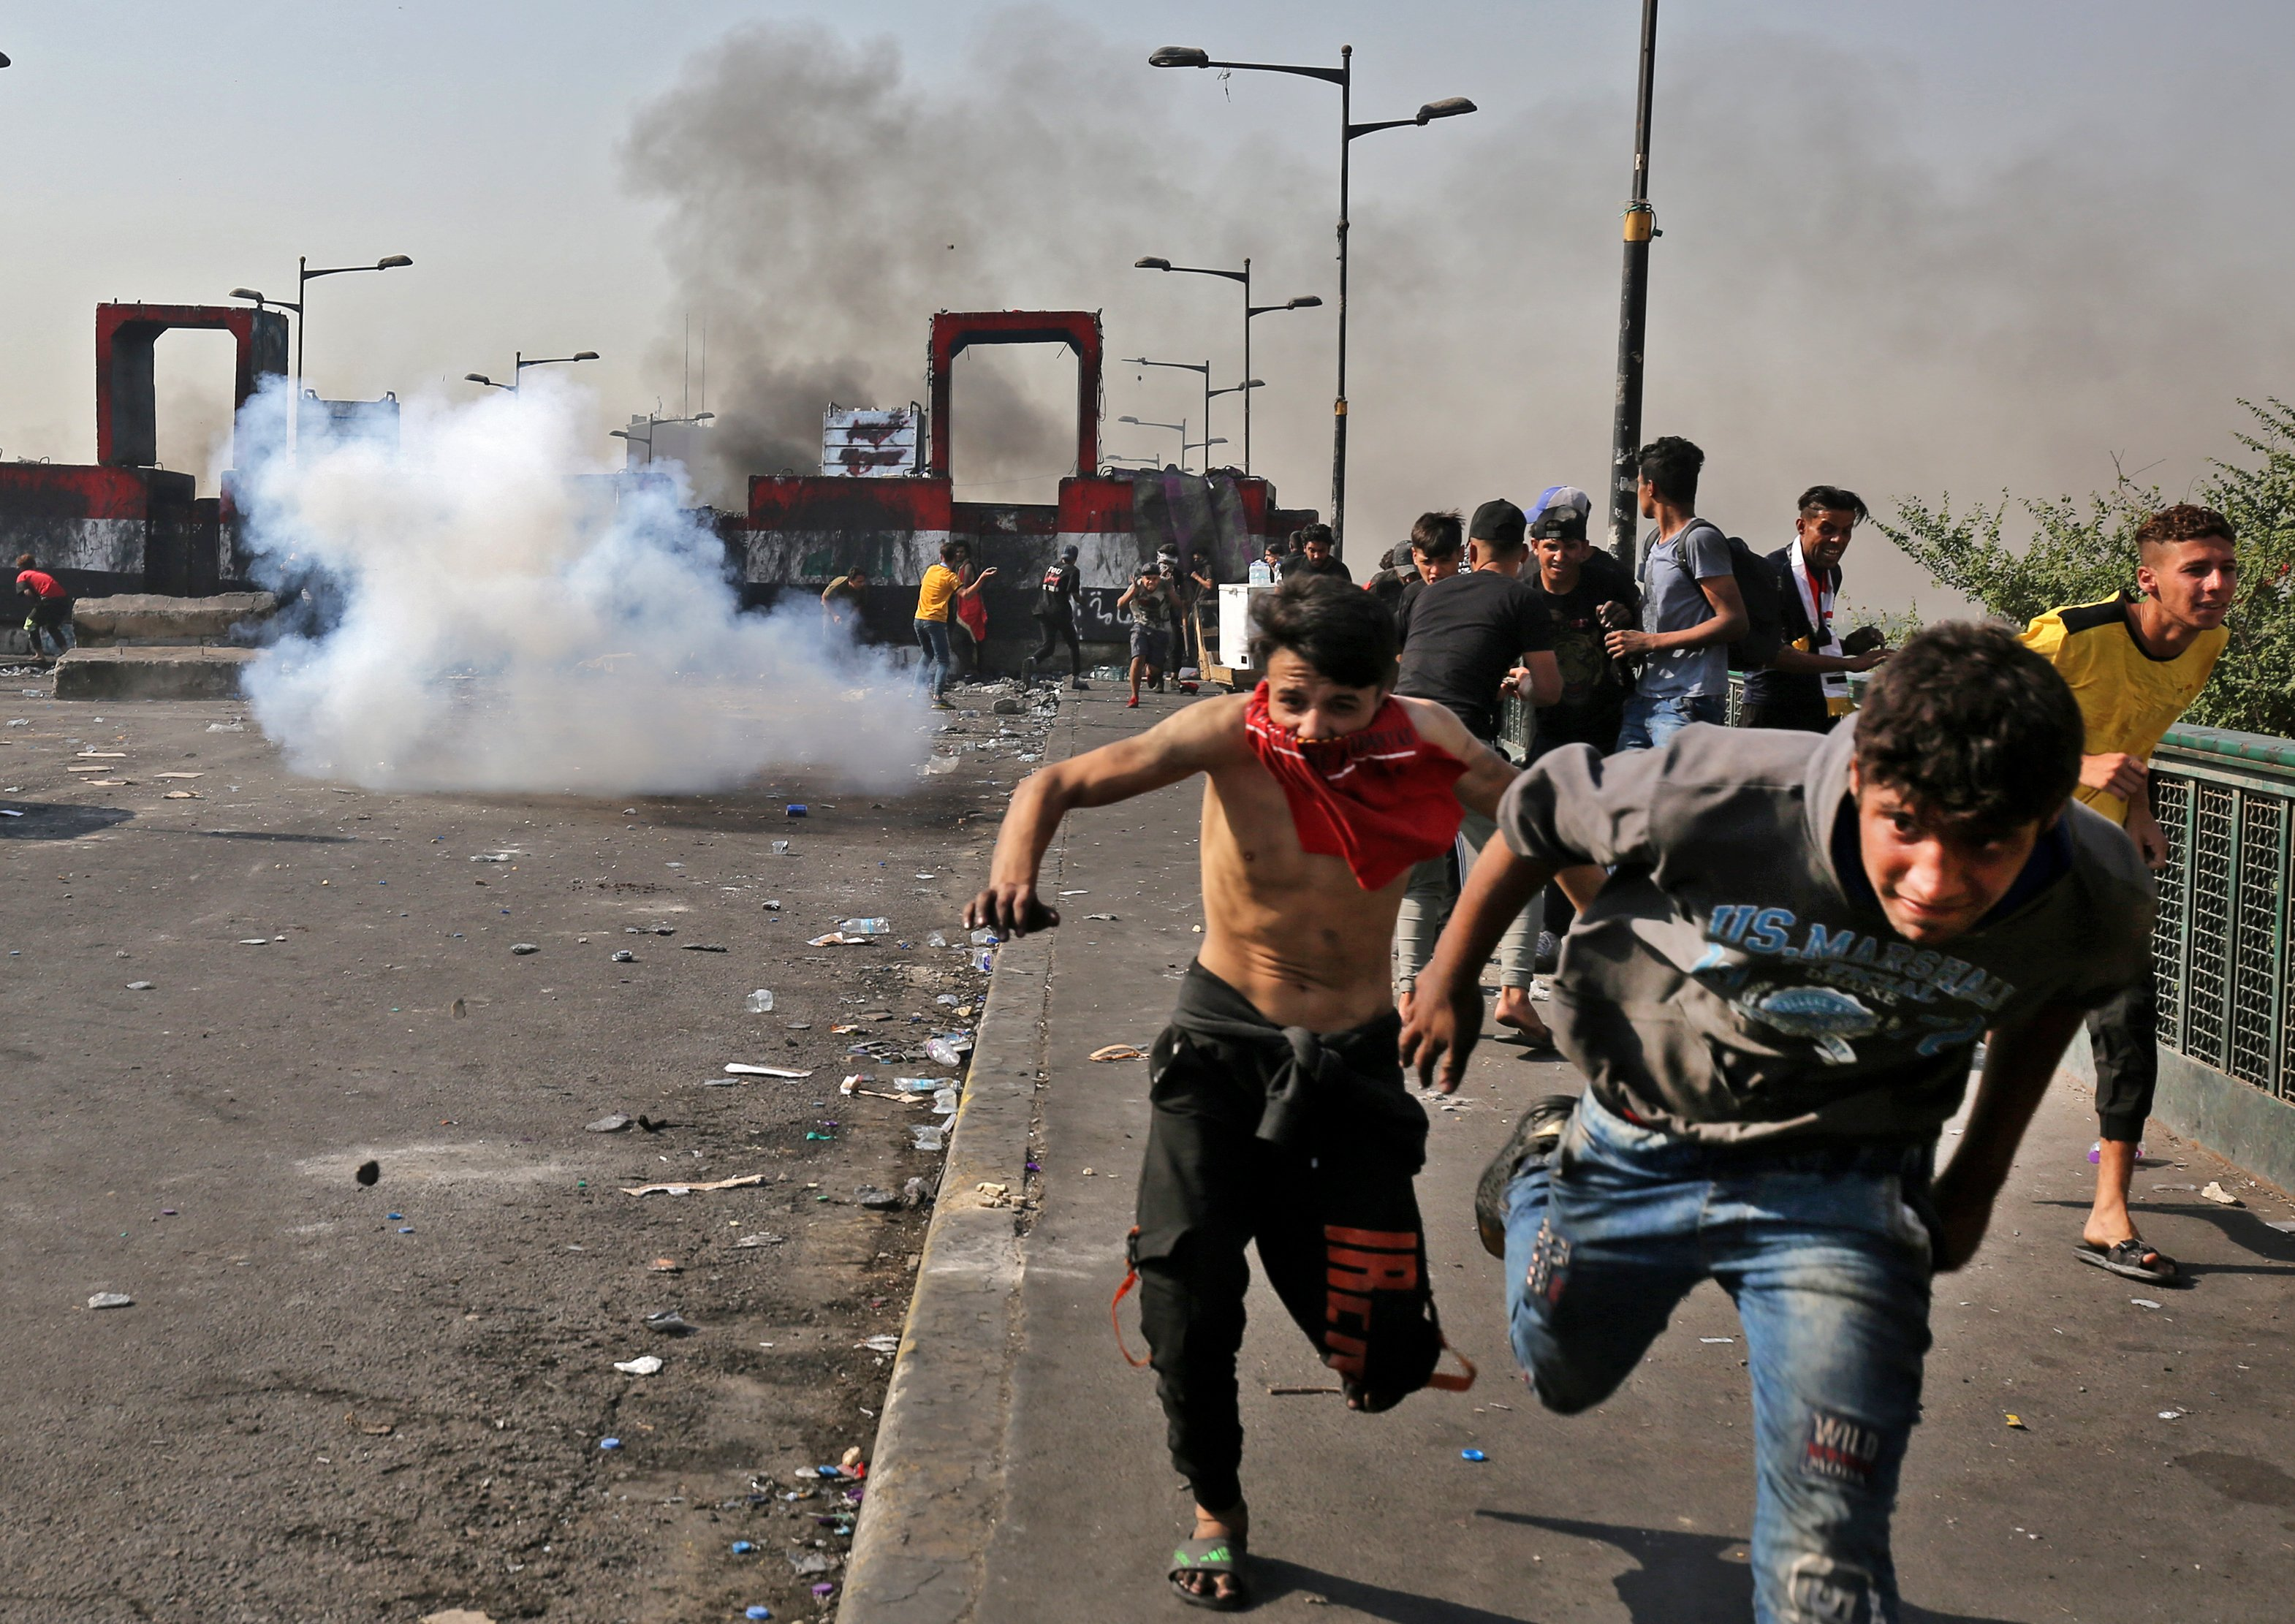 Clashes continue in Iraq on first anniversary of anti-government uprisings